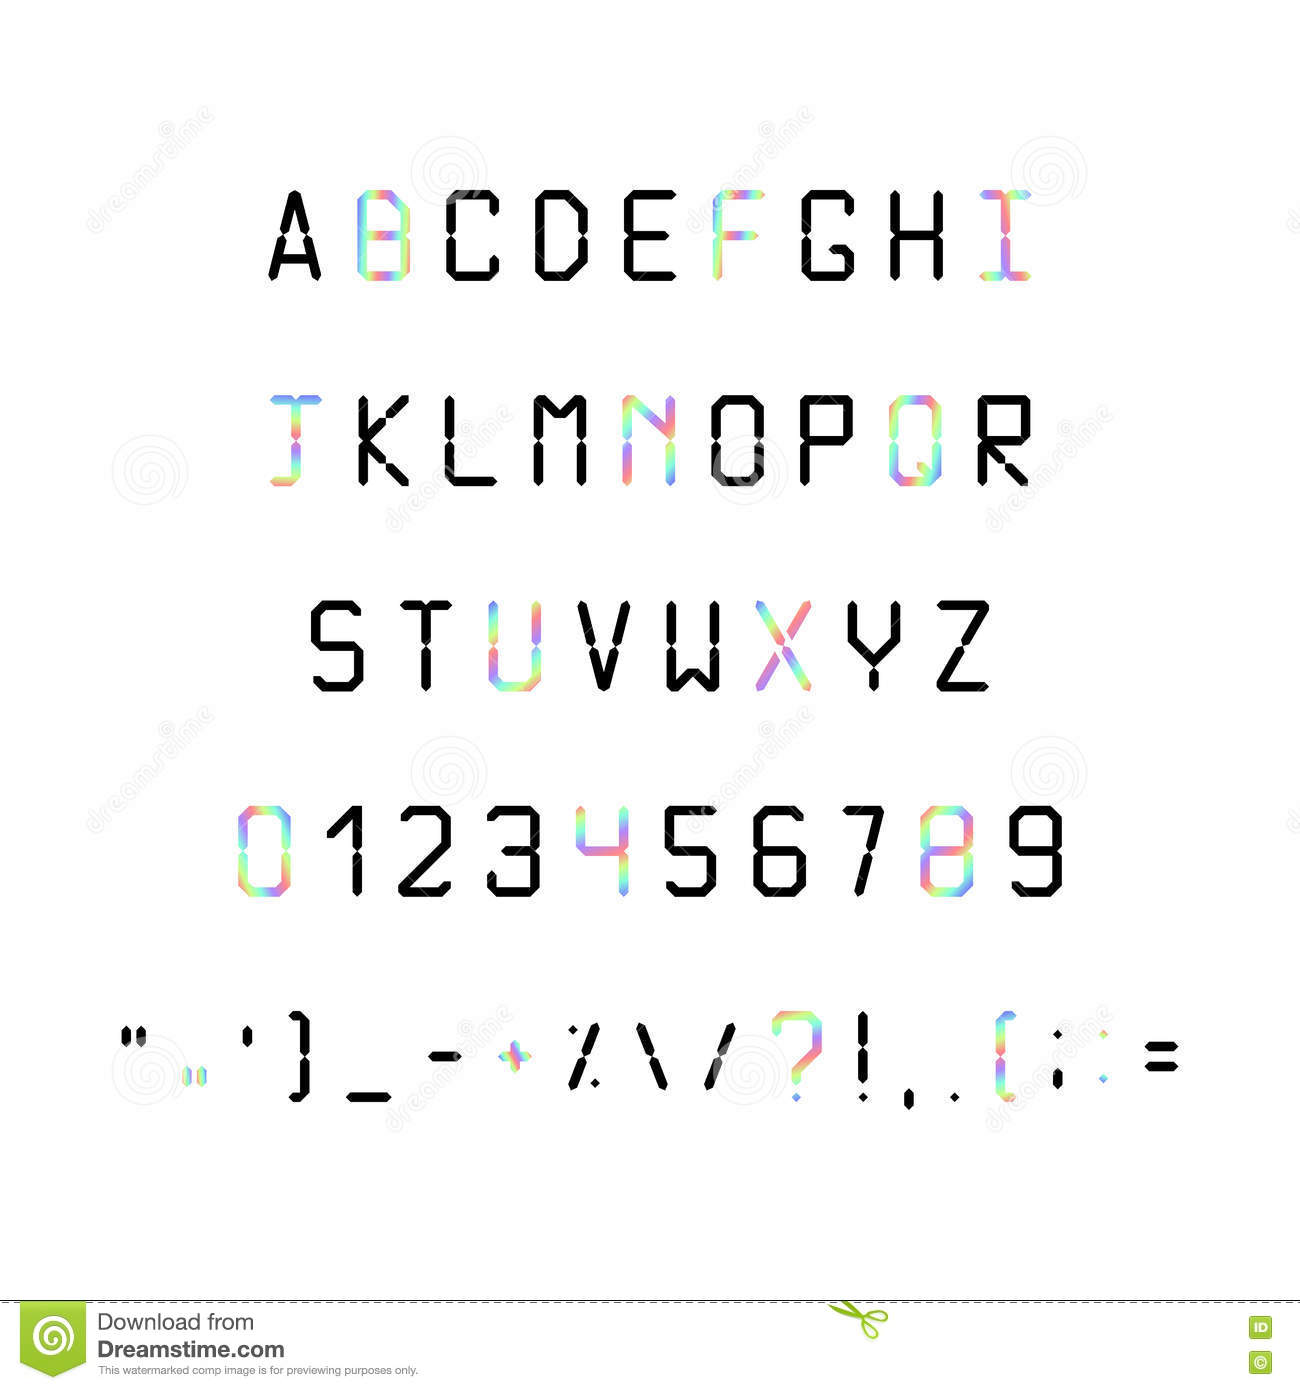 printed font fonts 80s 90s with a hologram simple letters and symbols